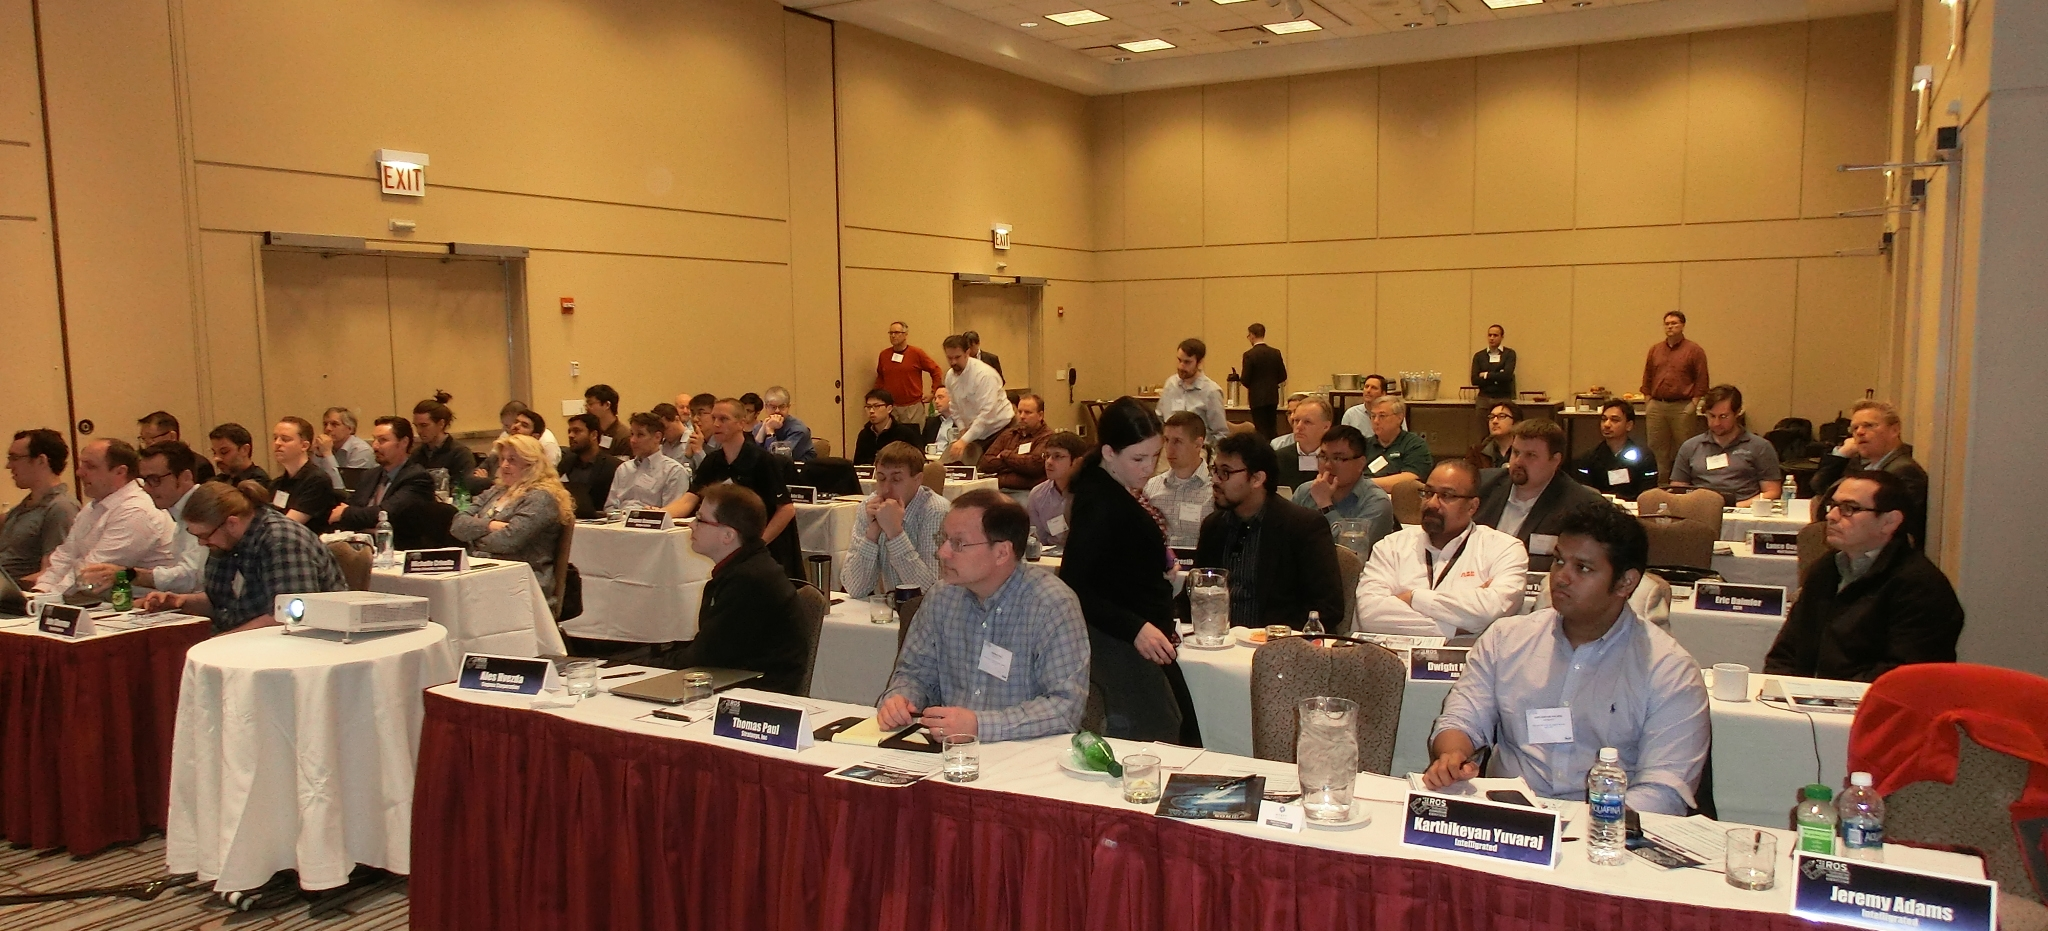 The ROS-I Consortium Americas meeting brought together representatives from across industry including end users, system integrators, robot OEMs, automation equipment OEMs, and researchers.